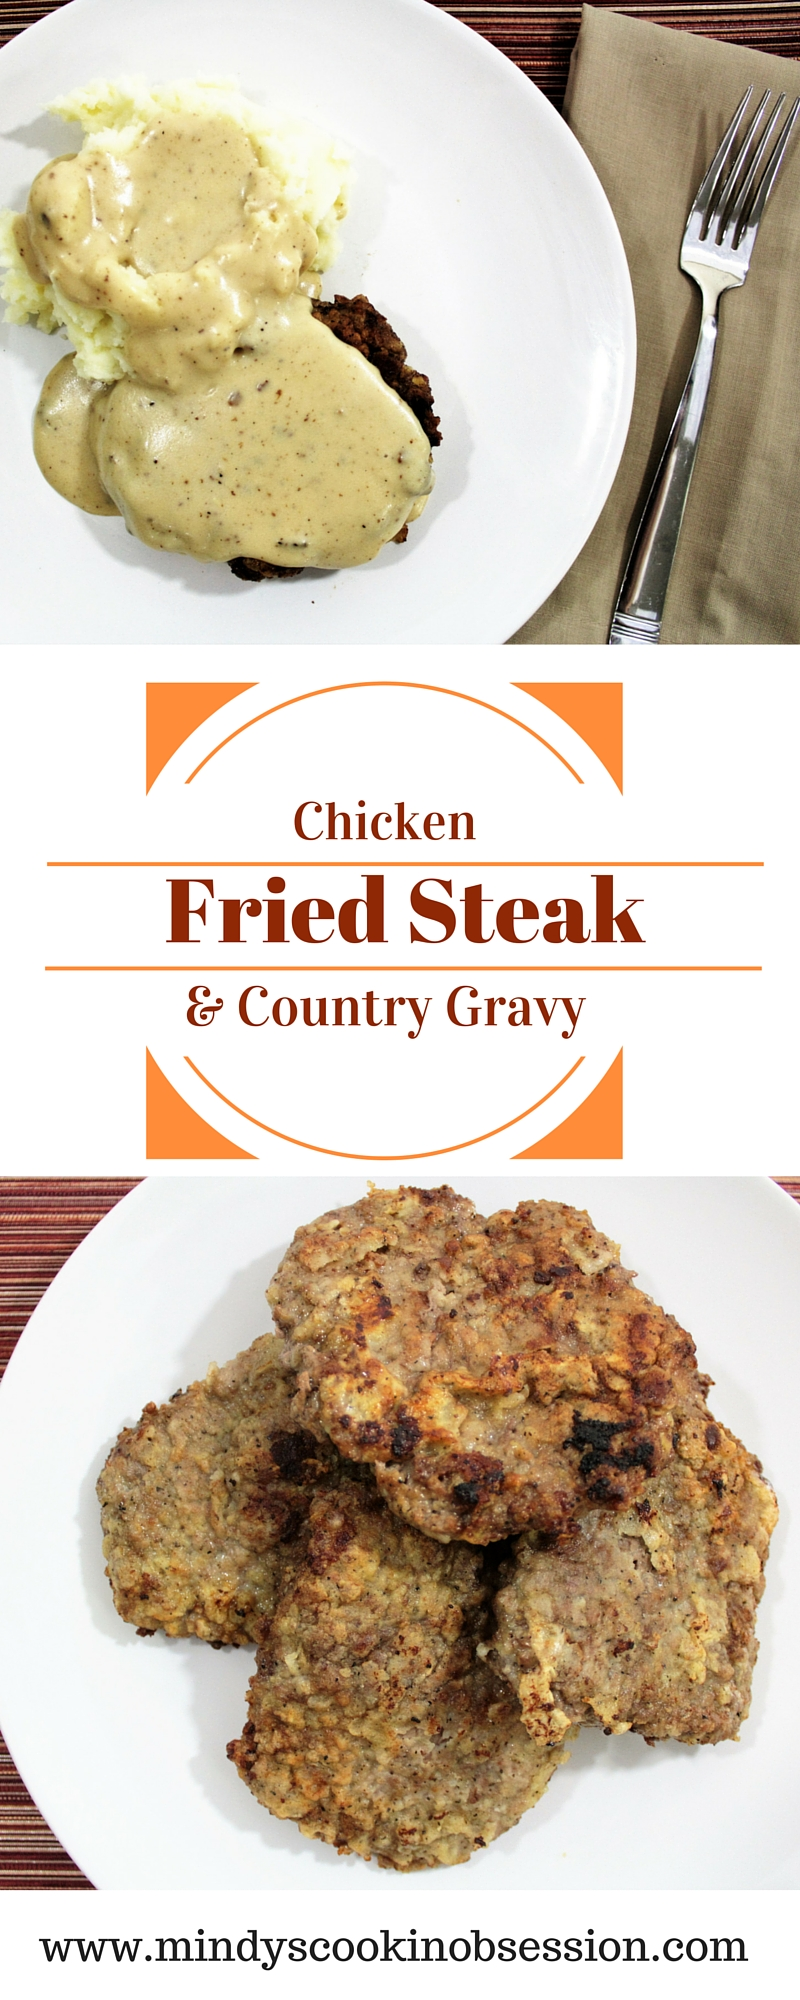 Chicken Fried Steak & Country Gravy is easy to make at home in about 30 minutes. You do not have to go to a restaurant to eat this classic comfort food.